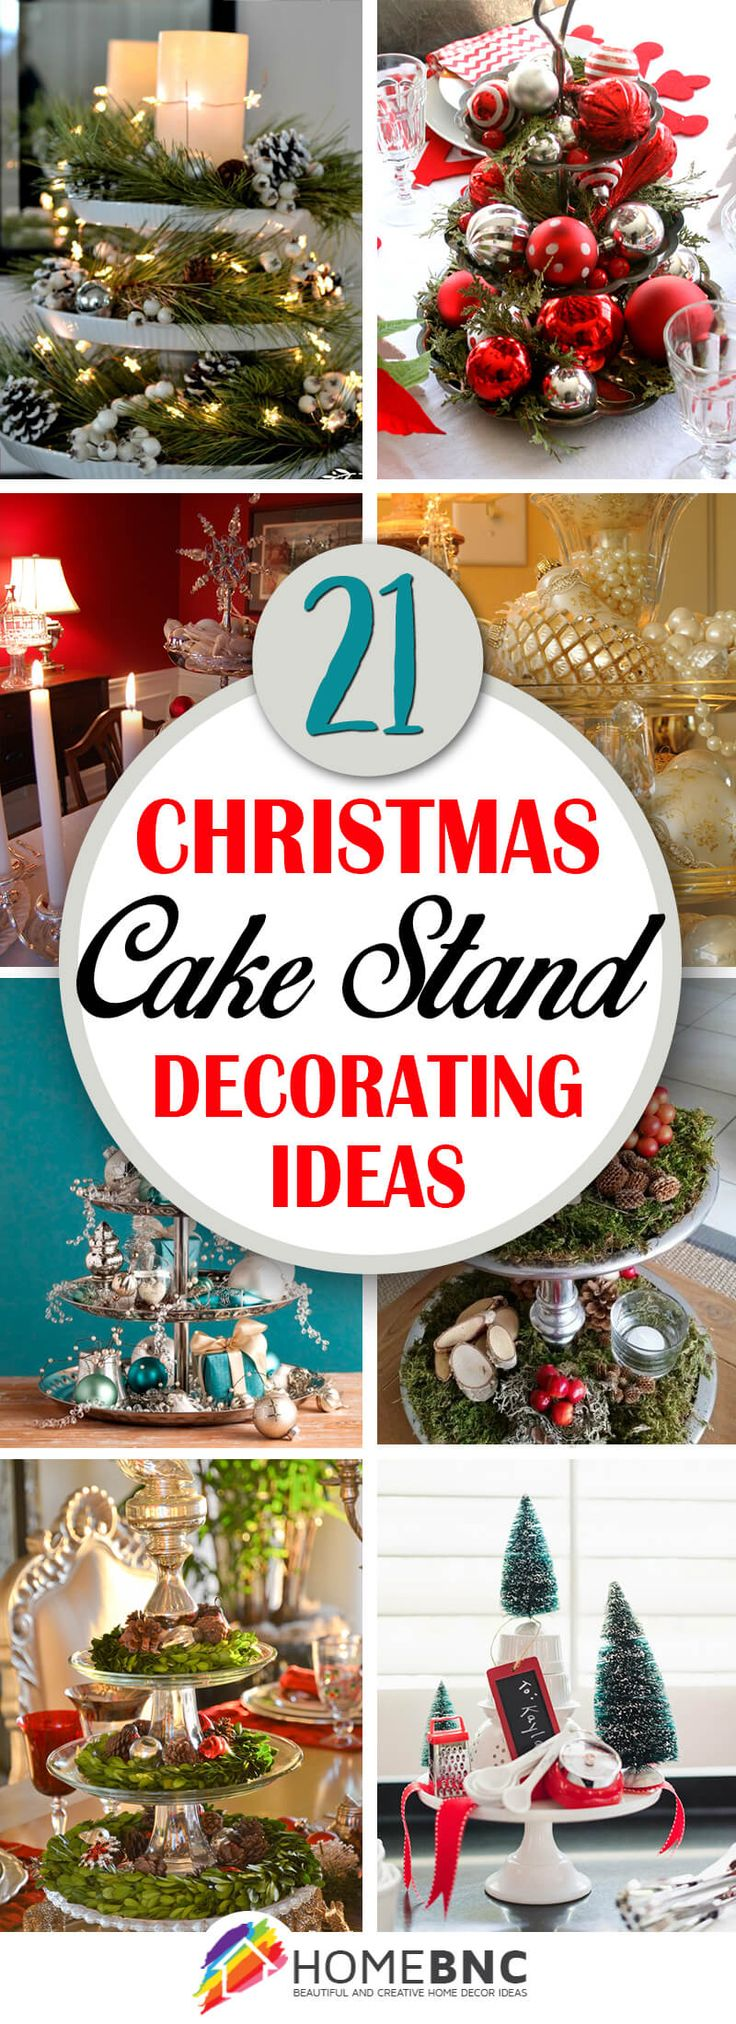 Cake Stand Decorations